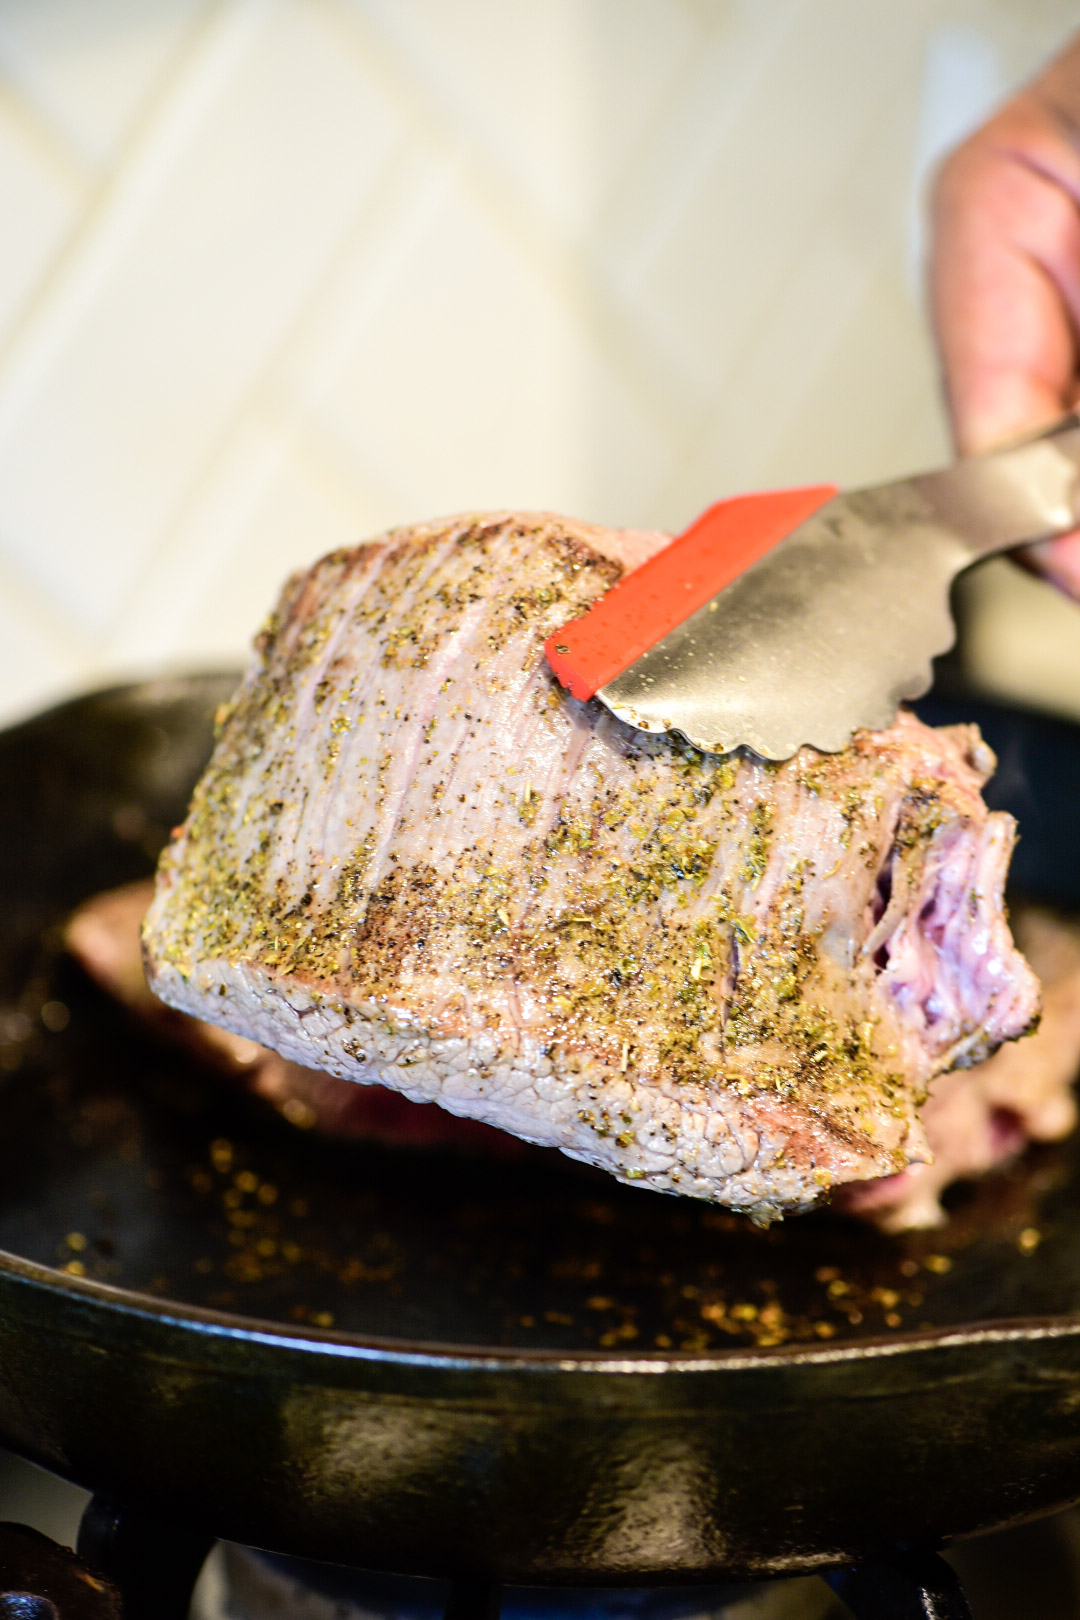 Searing flank steak in cast iron for Chopping herbs for beef ragu recipe